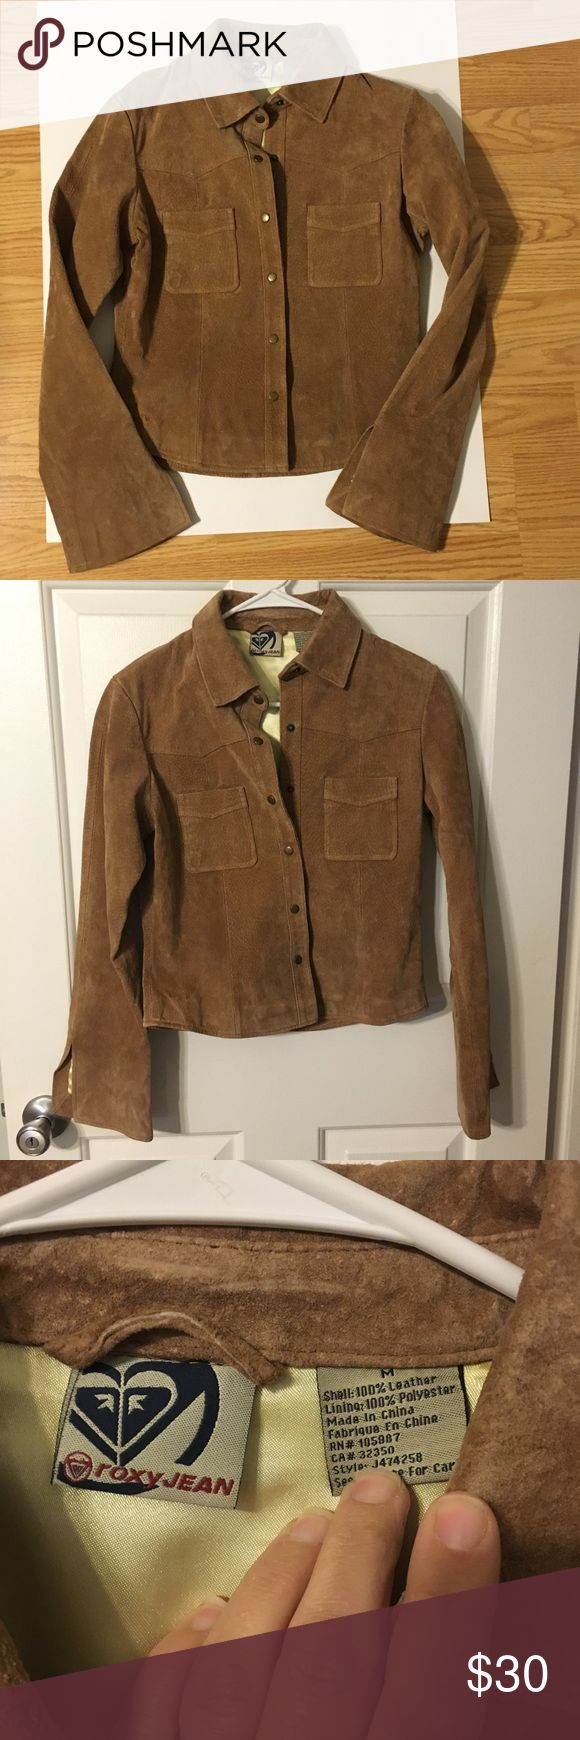 Roxy Leather jacket (vintage) Brown 100% suede leather jacket. Vintage, has been kept in a dress bag for years. Yellow lining. Snap buttons. Slits in the sleeves, the sleeves flare out. Runs small in my opinion, would fit a small better. 2 chest pockets, small spot under pocket seen in last 2 pics. Seems to be 70's inspired. Roxy Jean Jackets & Coats